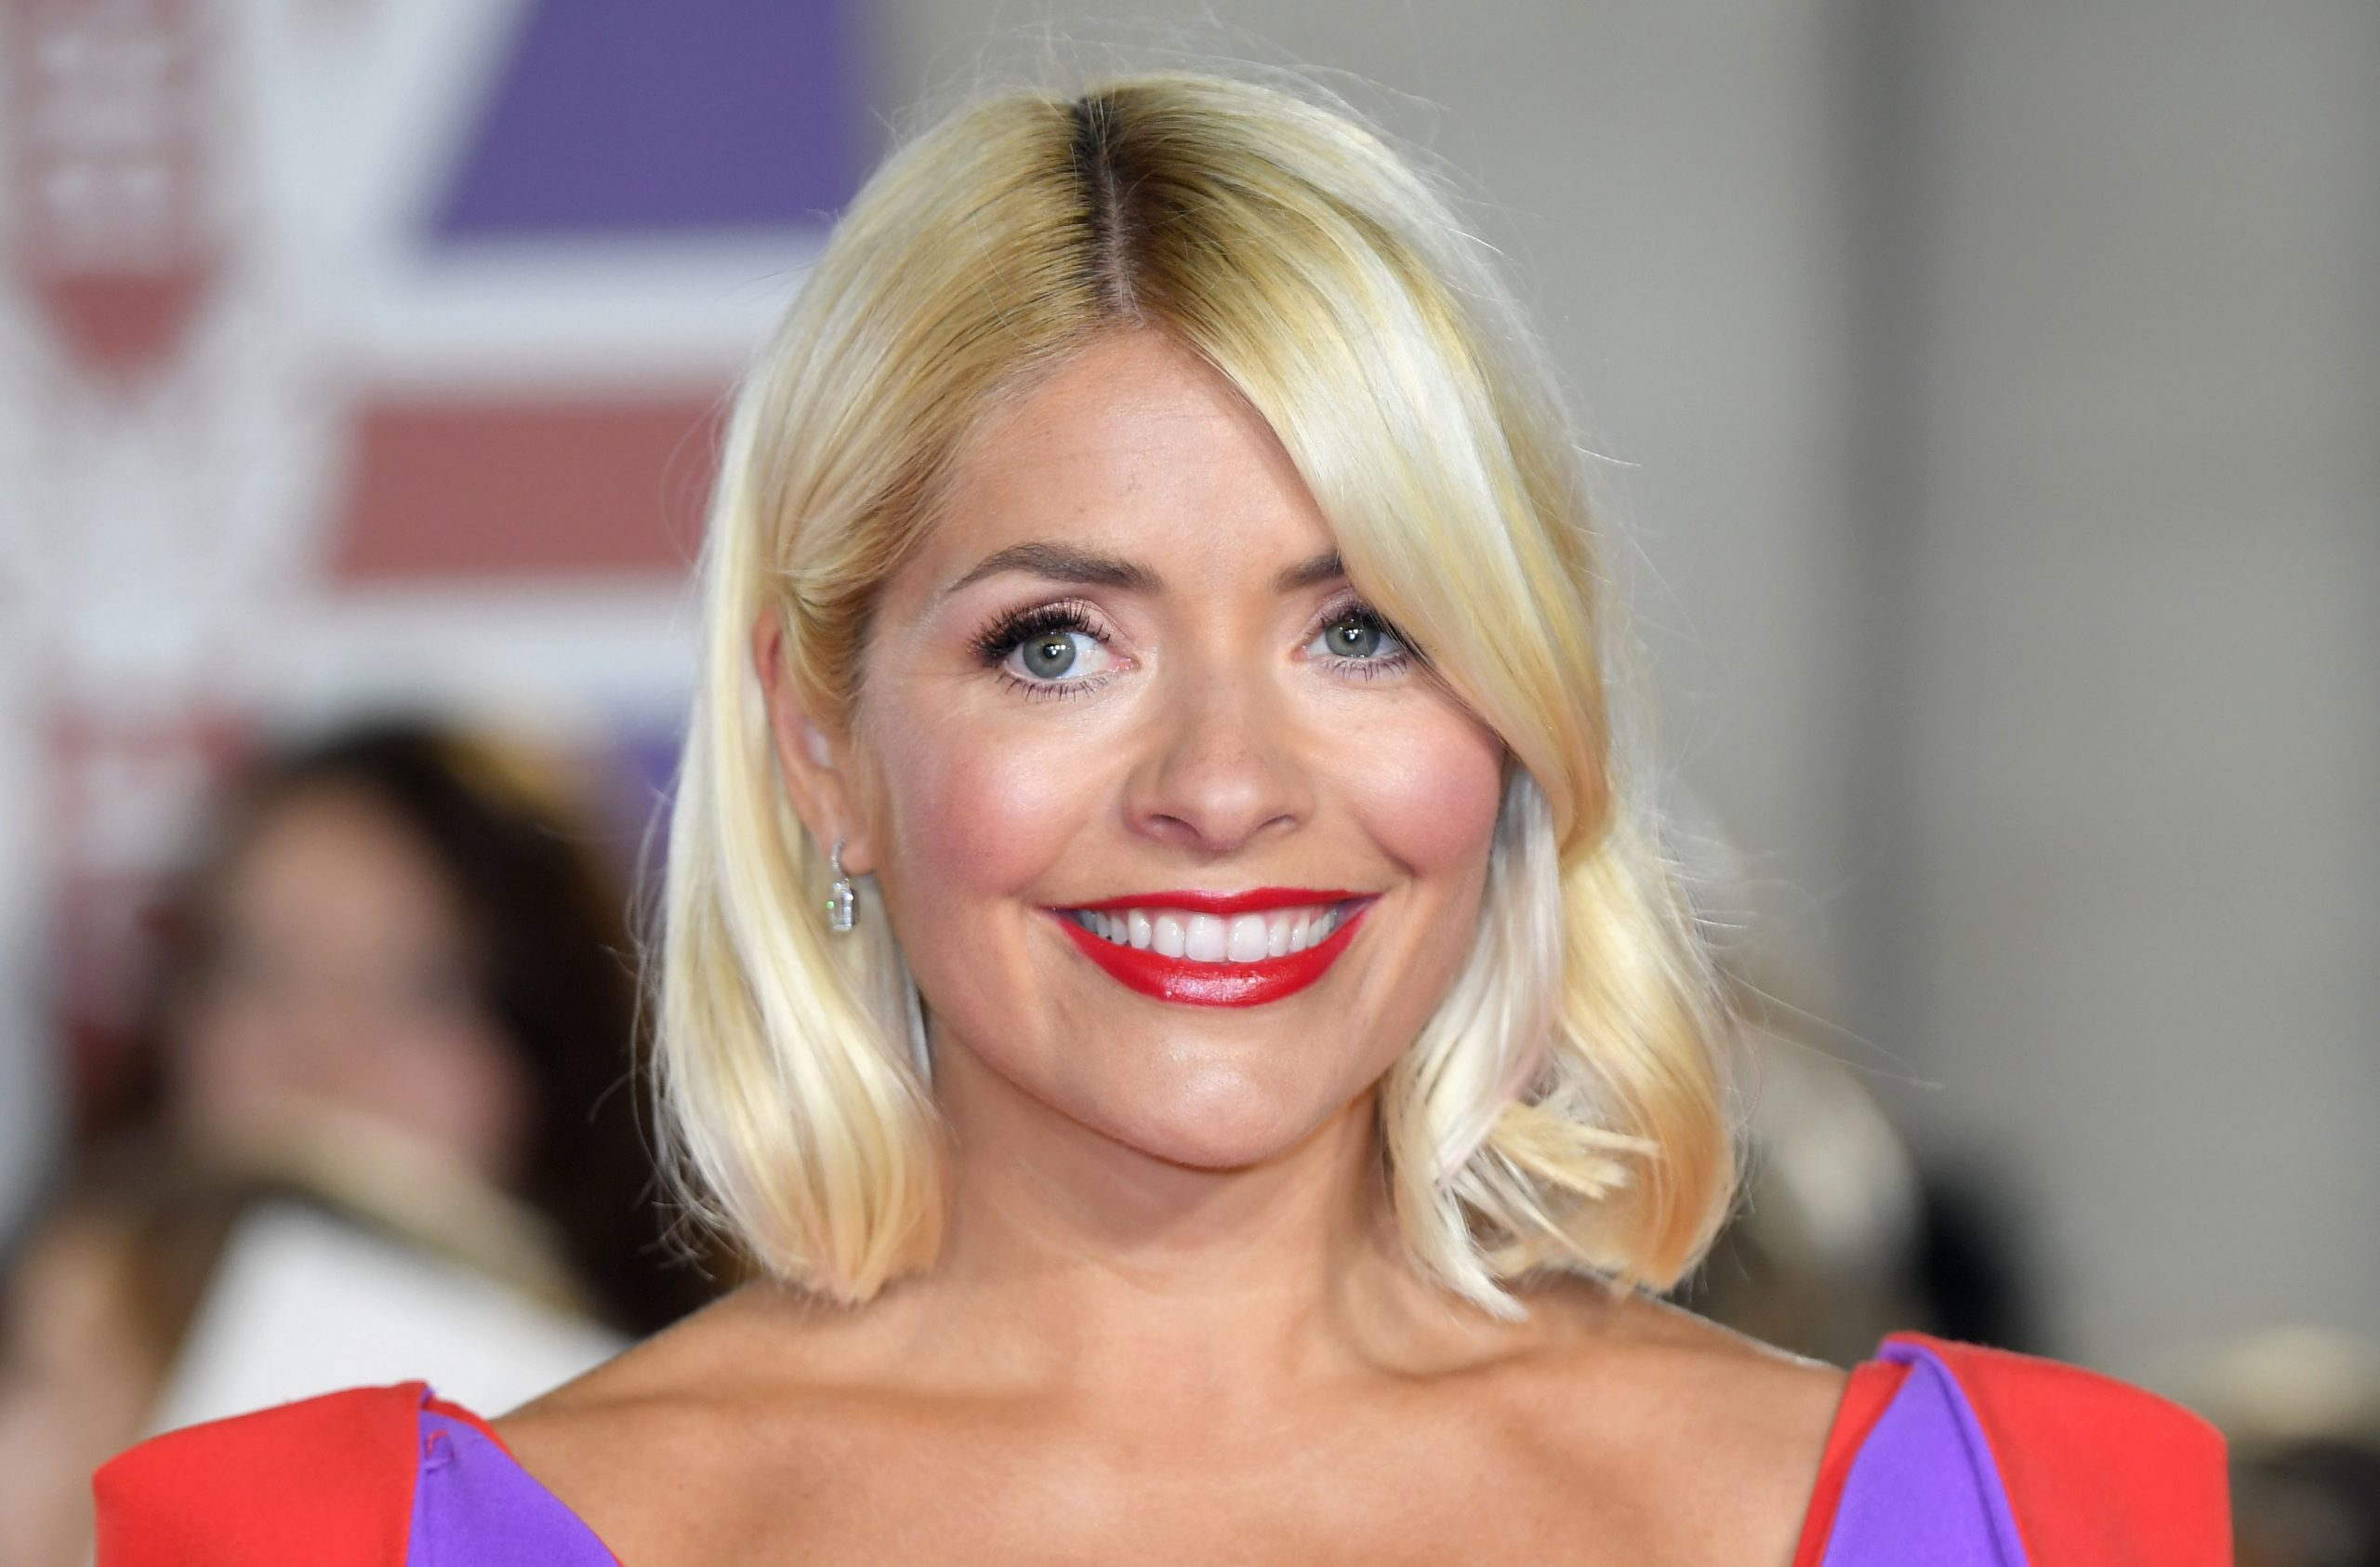 Holly Wiloughby